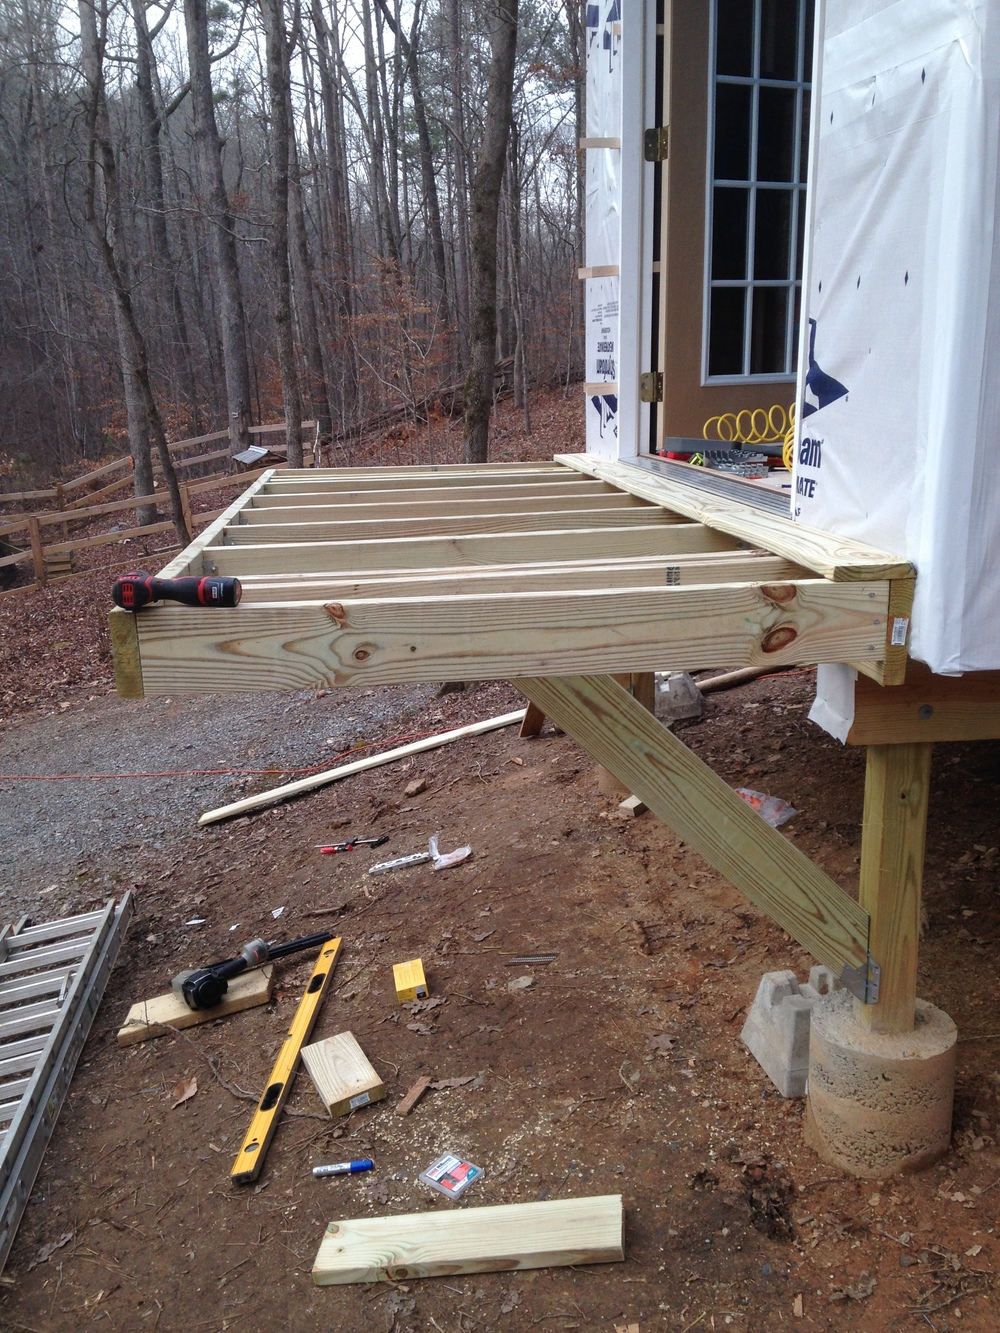 Framing the deck. It's small, but perfect for a pair of Adirondack chairs, a side table, and a couple of cocktails. Two drink maximum right now, until I get the railing installed!